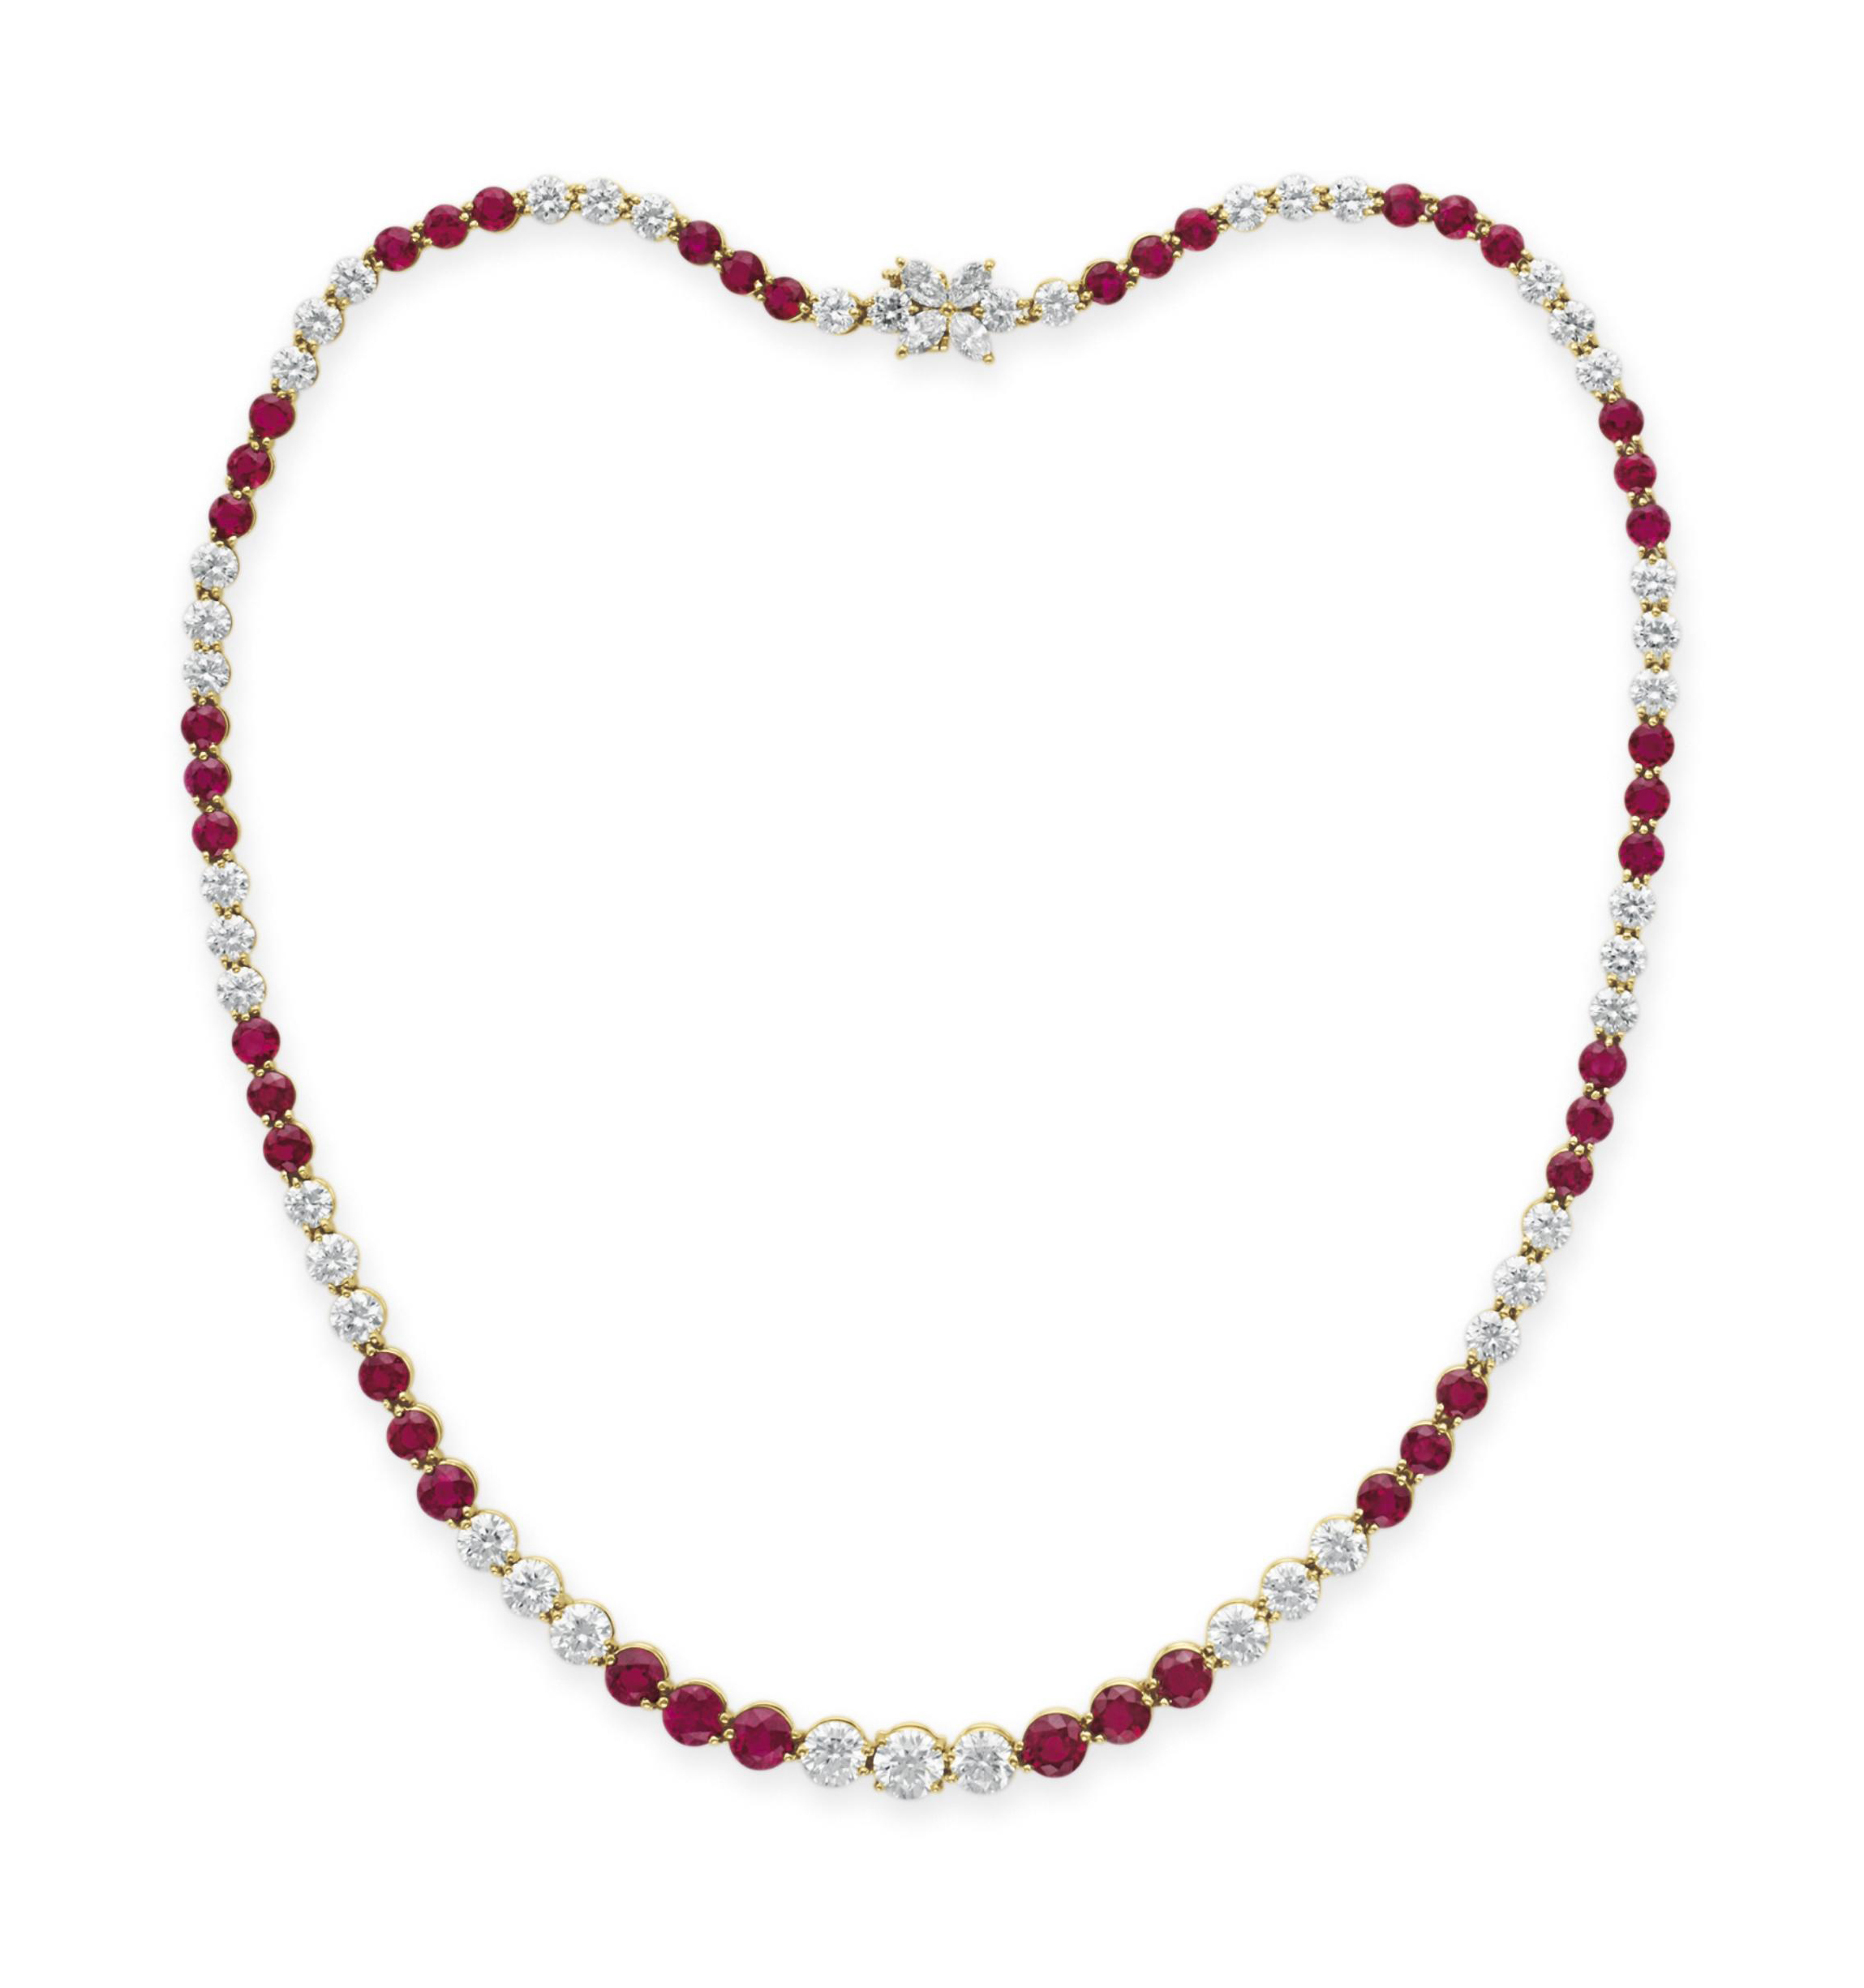 d11f72b832bfb A DIAMOND AND RUBY NECKLACE, BY TIFFANY & CO. | Jewelry, necklace ...